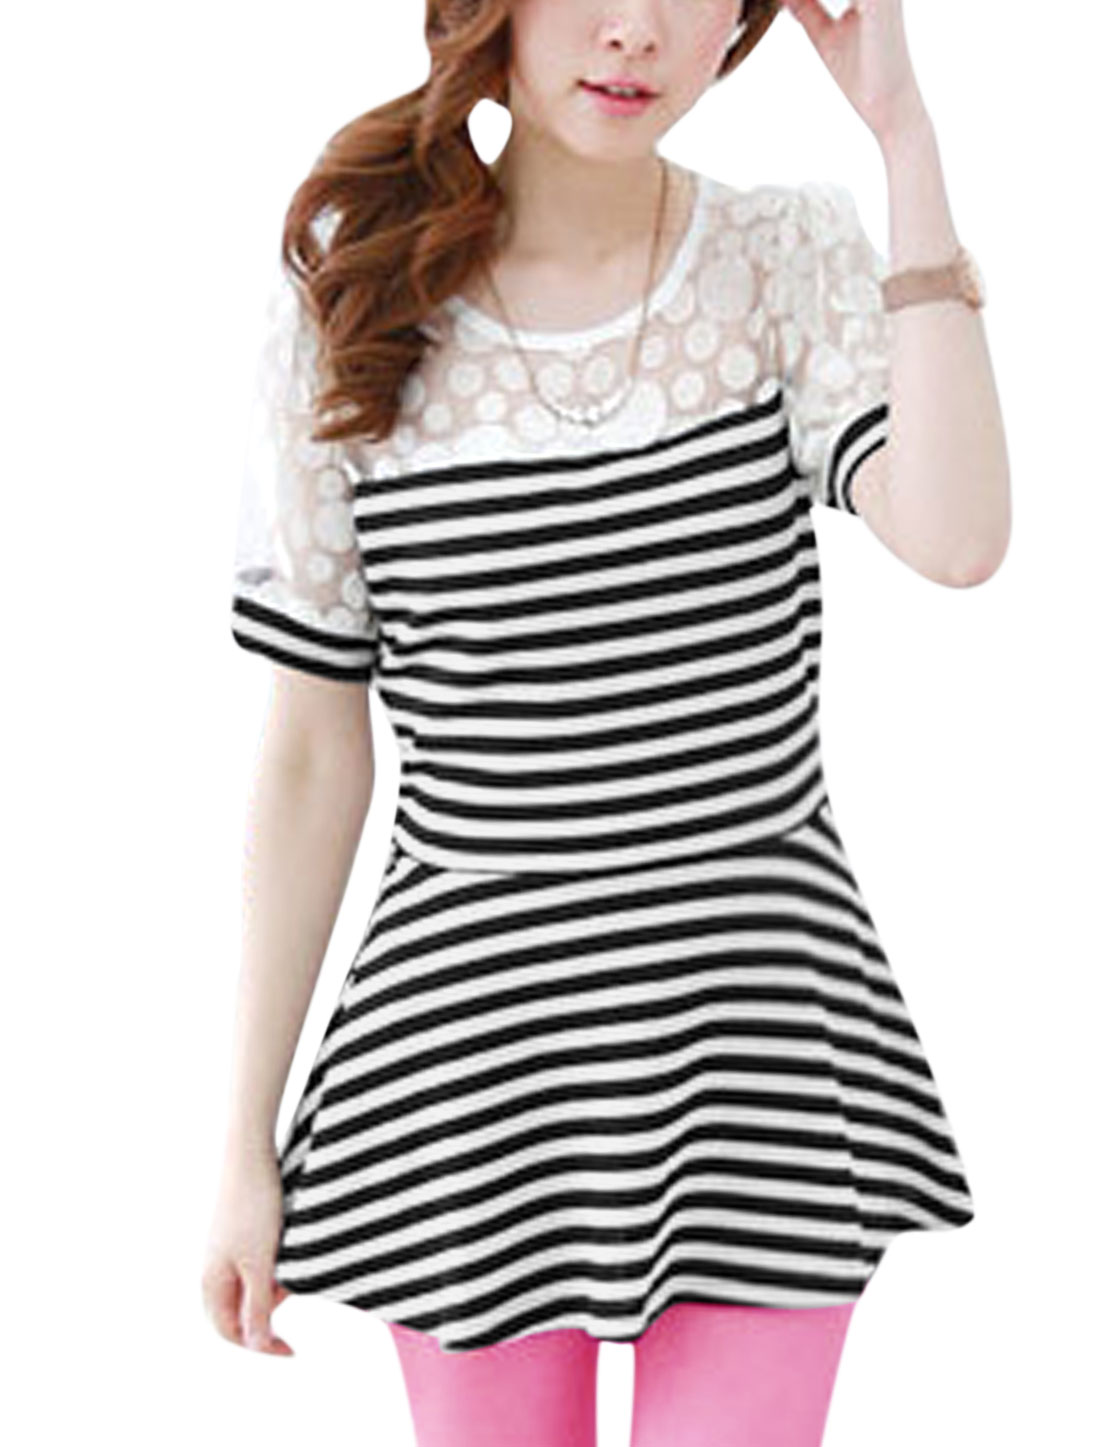 Lady Stripes Dots Prints Mesh Panel Peplum Top Black White XS